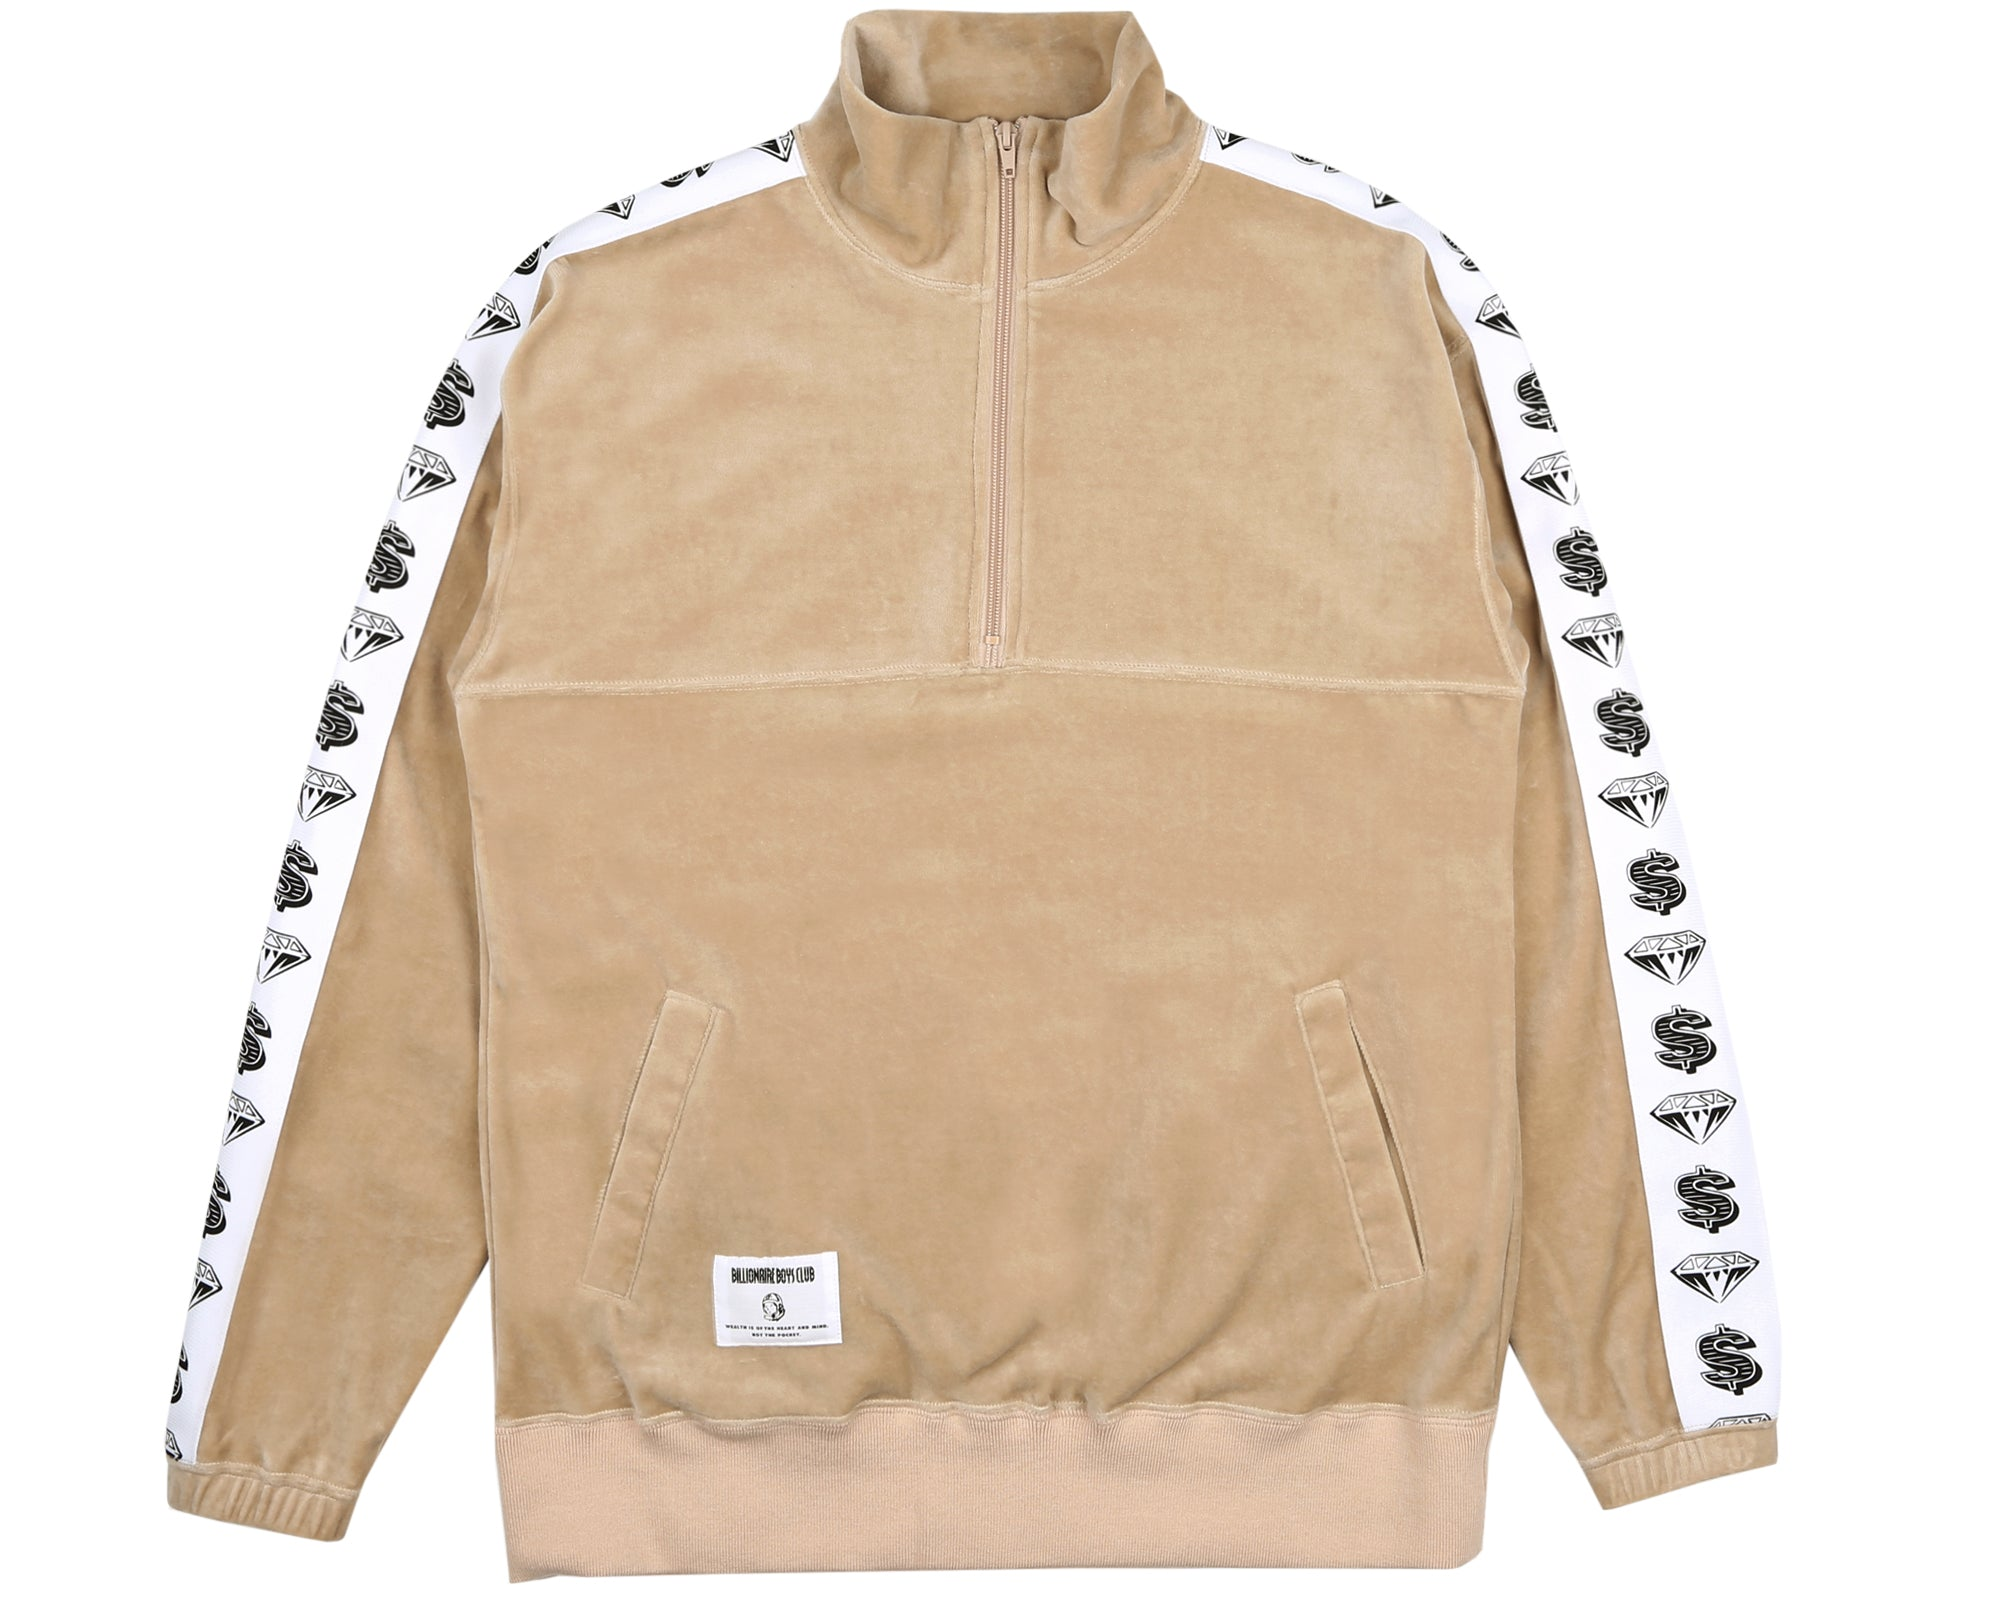 VELOUR 1/2 ZIP TRACK TOP - TAN